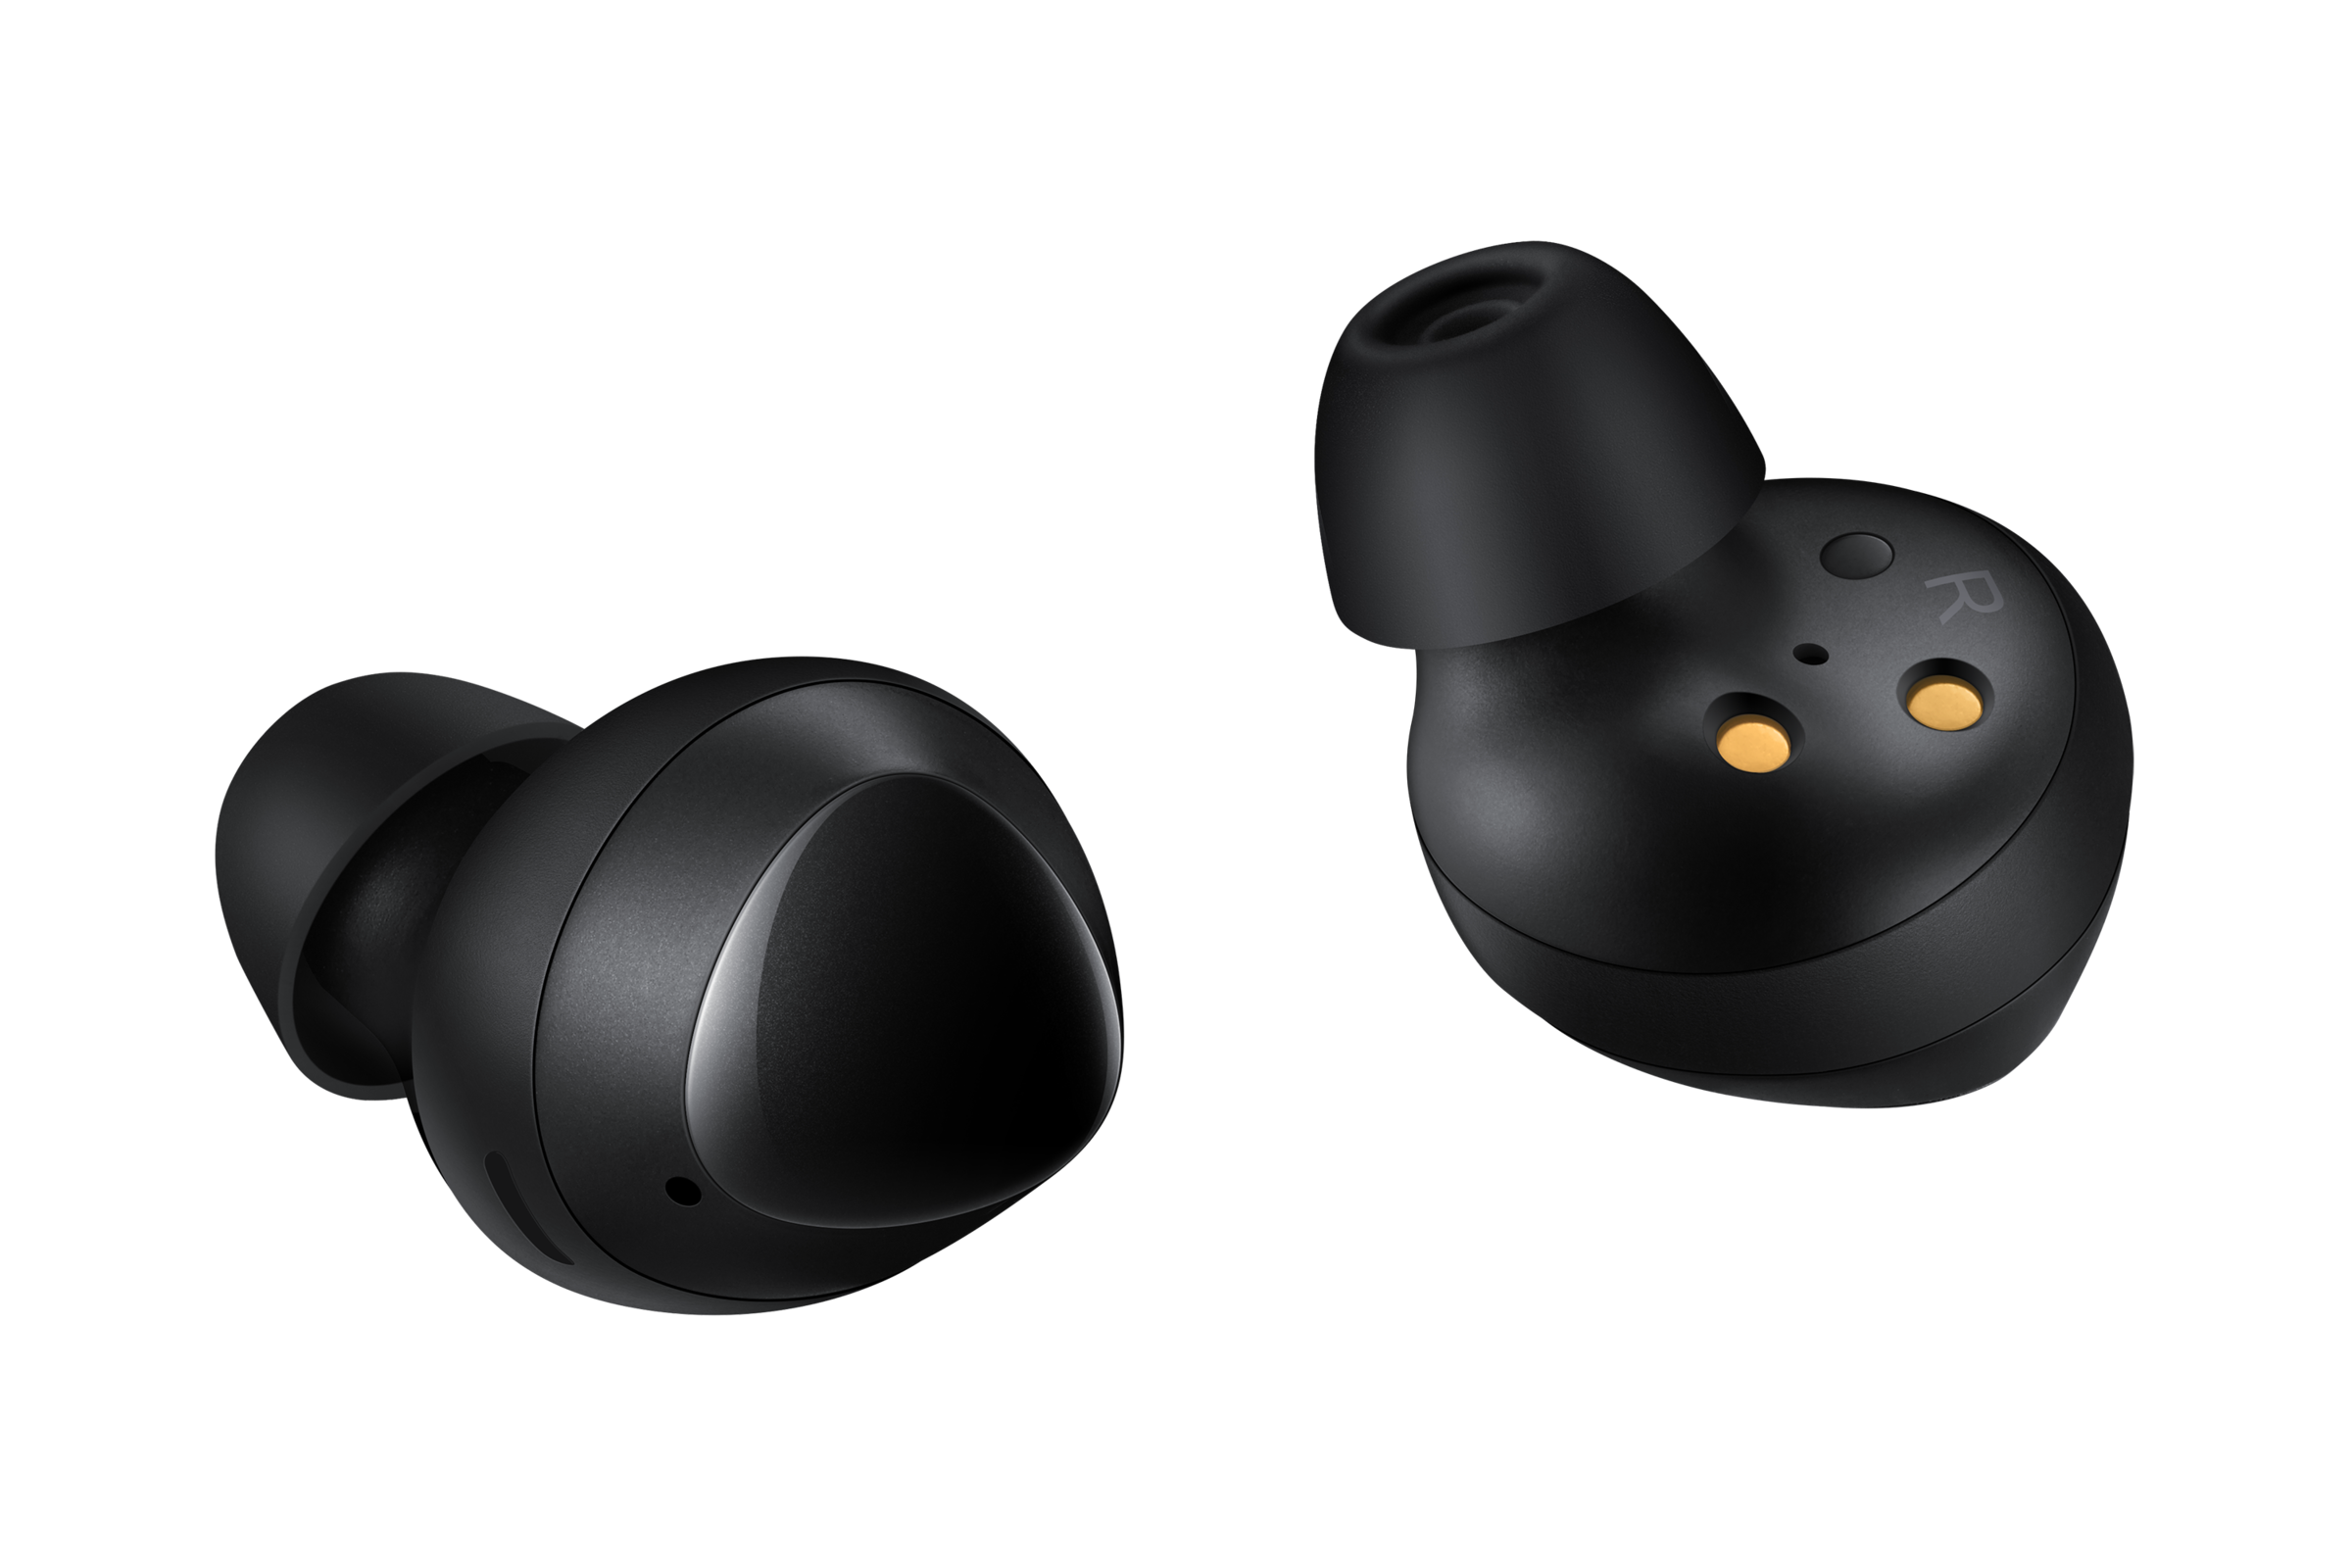 Select Walmart Stores: Samsung Galaxy Buds True Wireless Earbuds (Black)